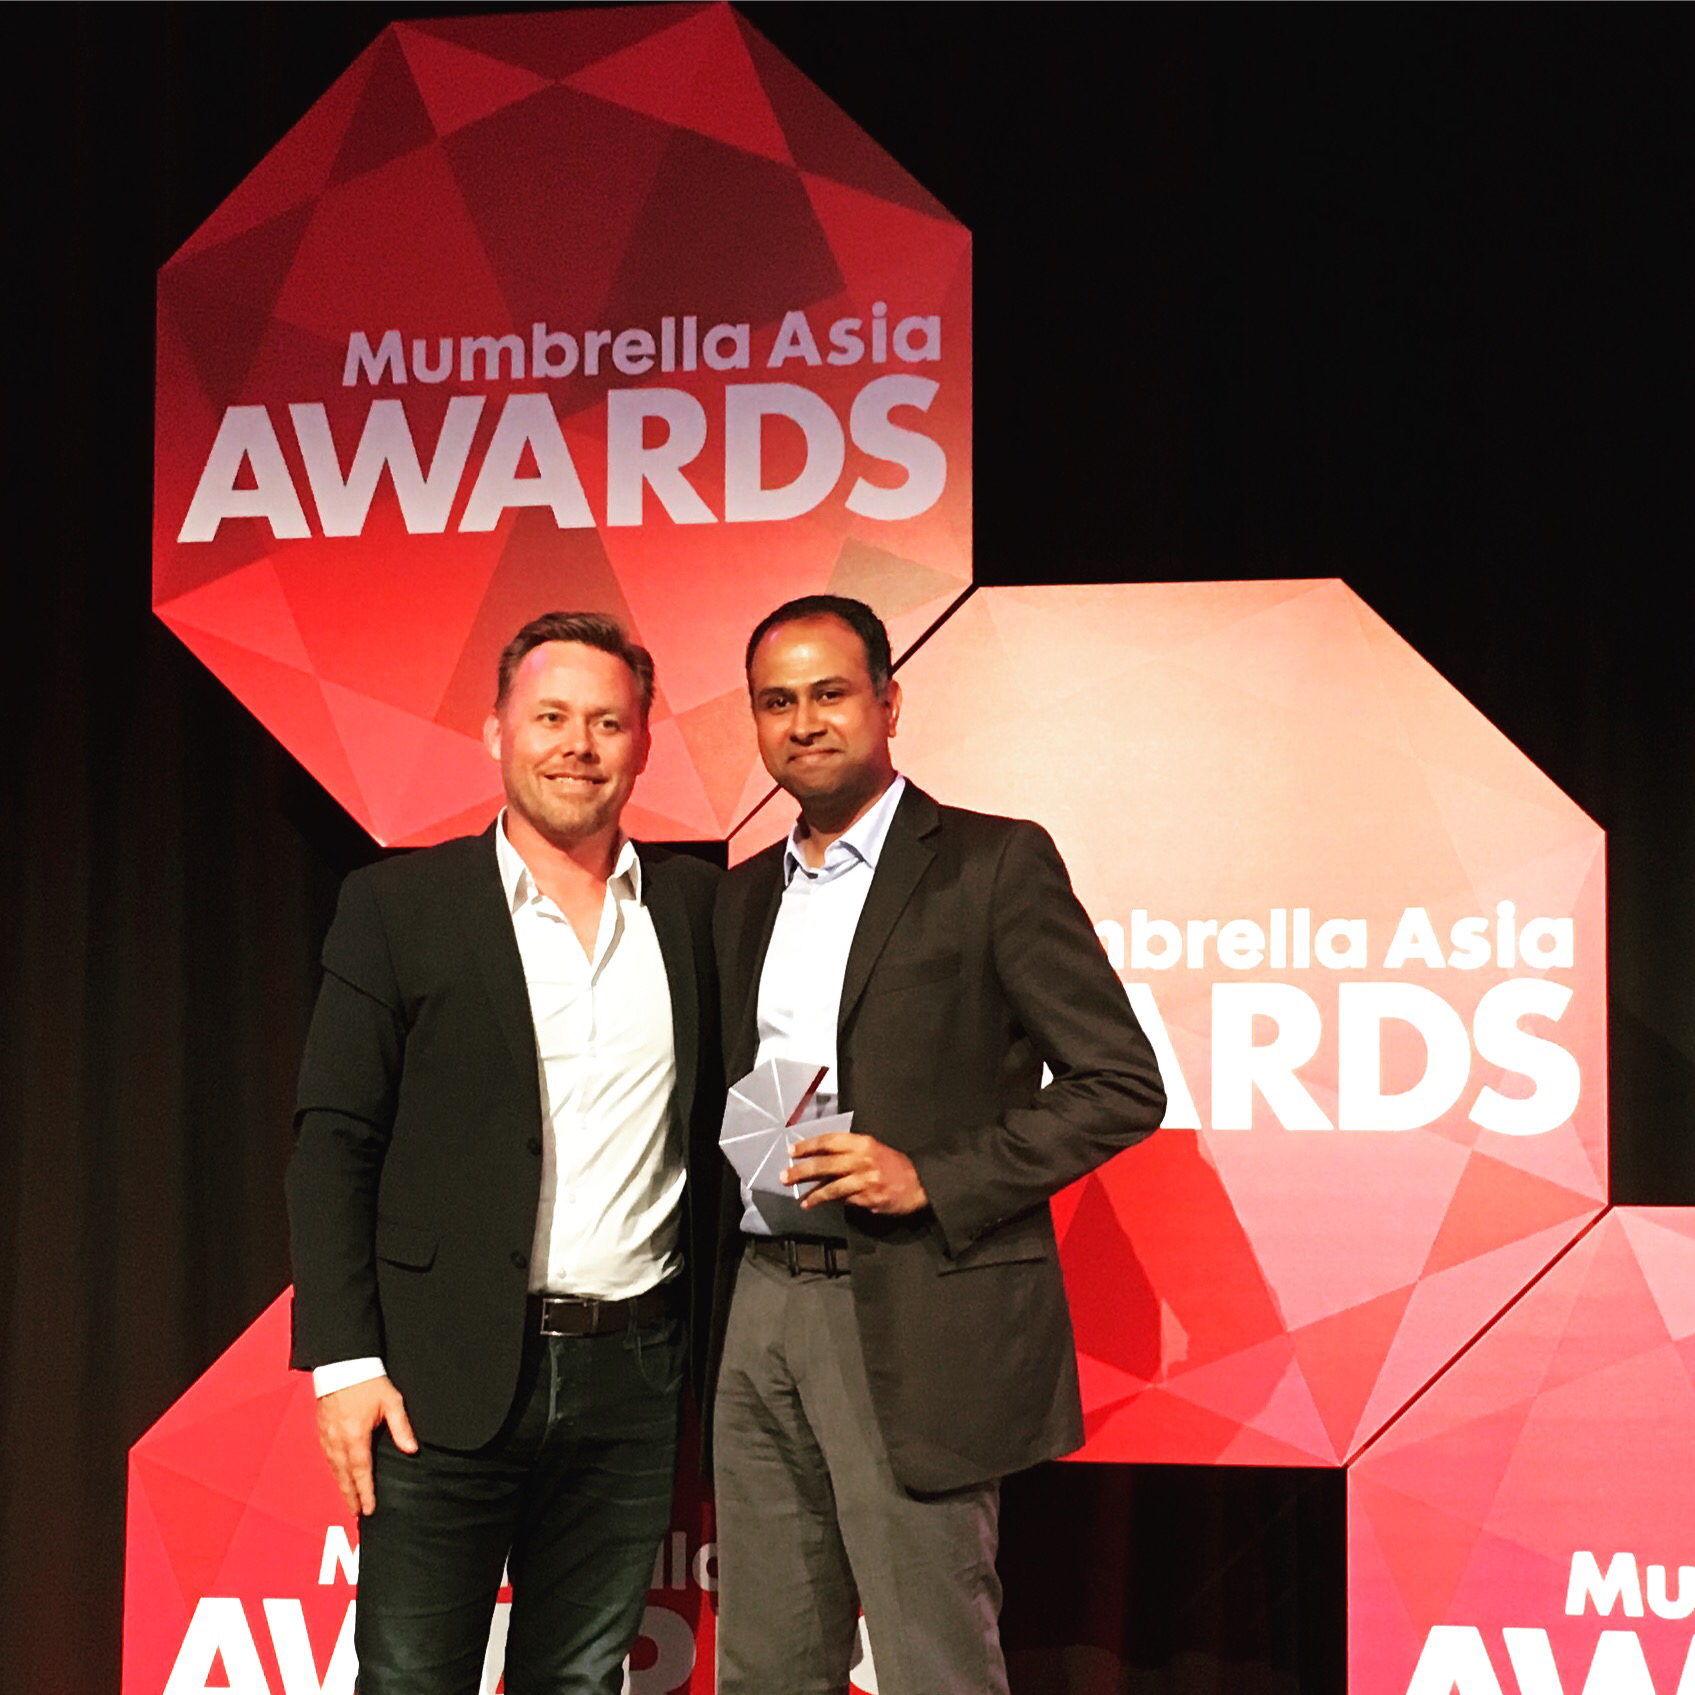 Wootag receive recognition as 'Marketing Technology Company of the Year'